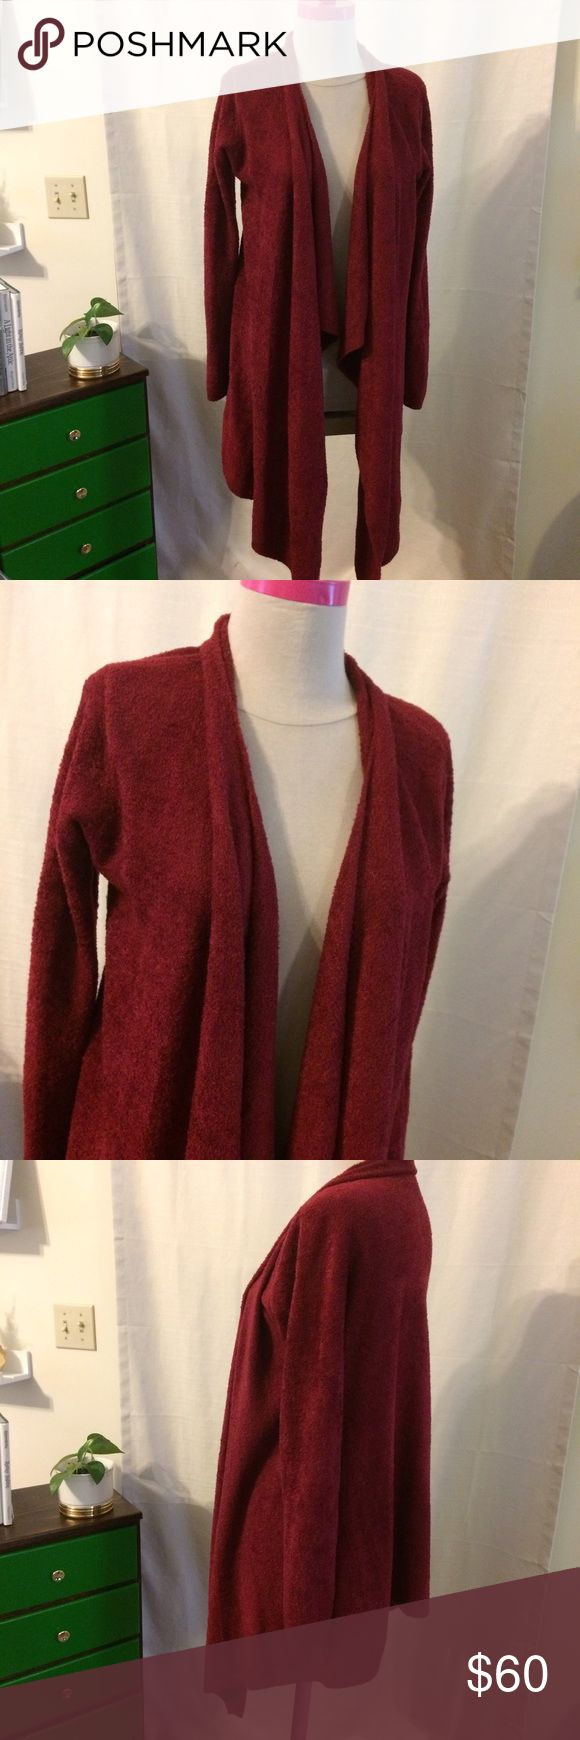 Bamboo chic lite drape front cardigan This is the most cozy sweater I've ever worn! Great maroon flowy cardigan.  Fantastic condition!  Sooooo soft! Barefoot Dreams Sweaters Cardigans